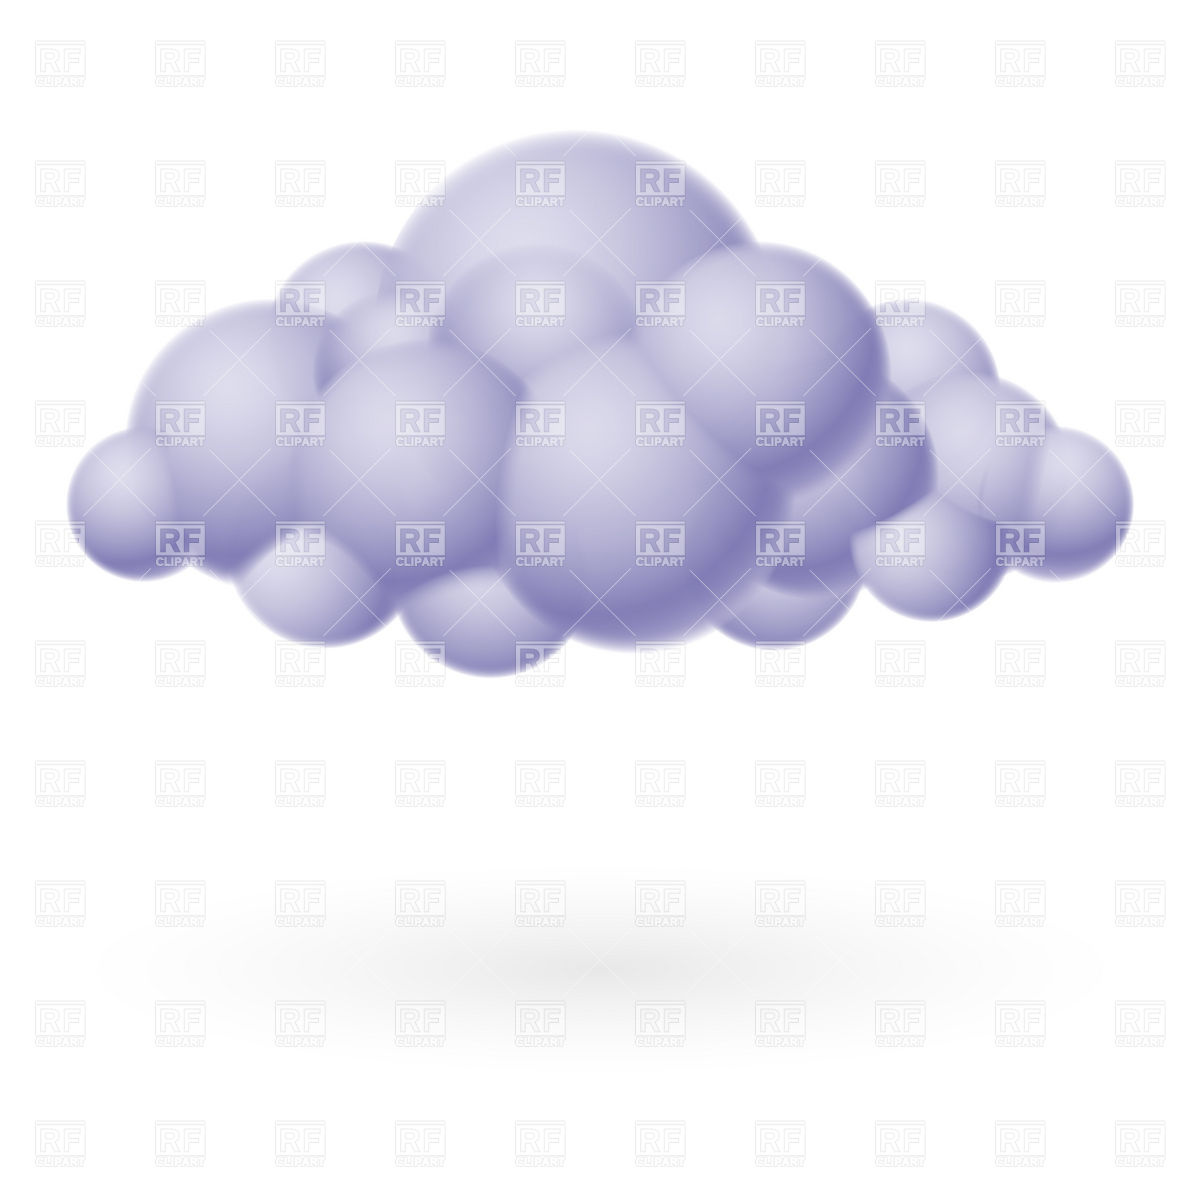 14 Storm Cloud Vector Images